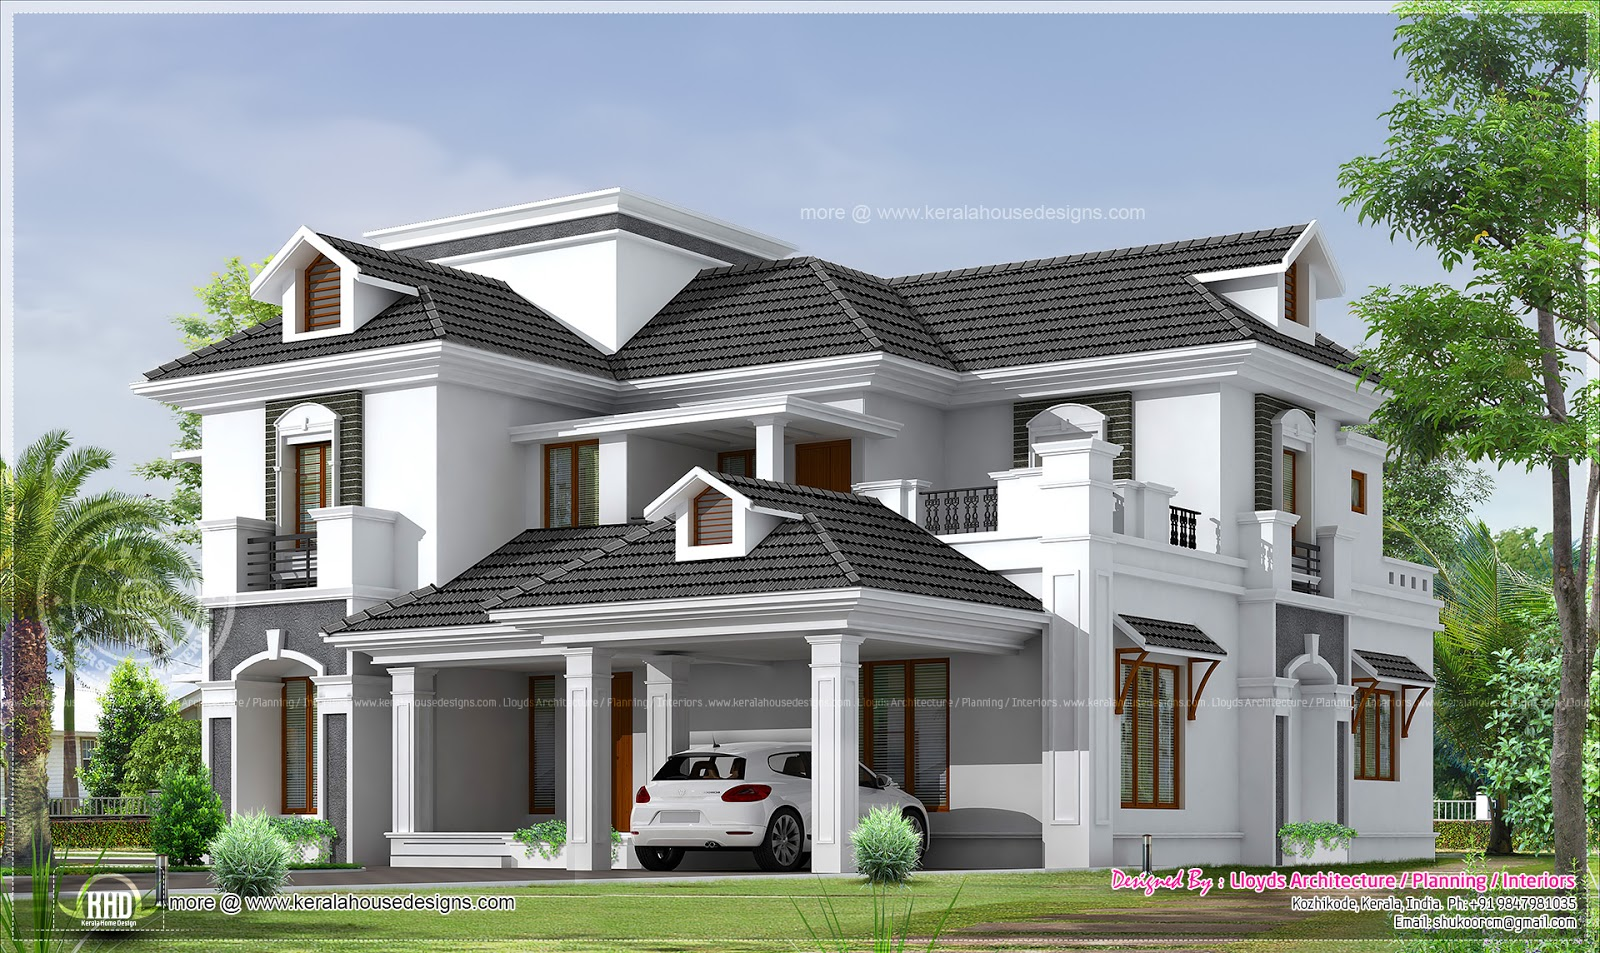 4 bedroom house designs simple 4 bedroom house plans 4 for Simple 4 bedroom home plans